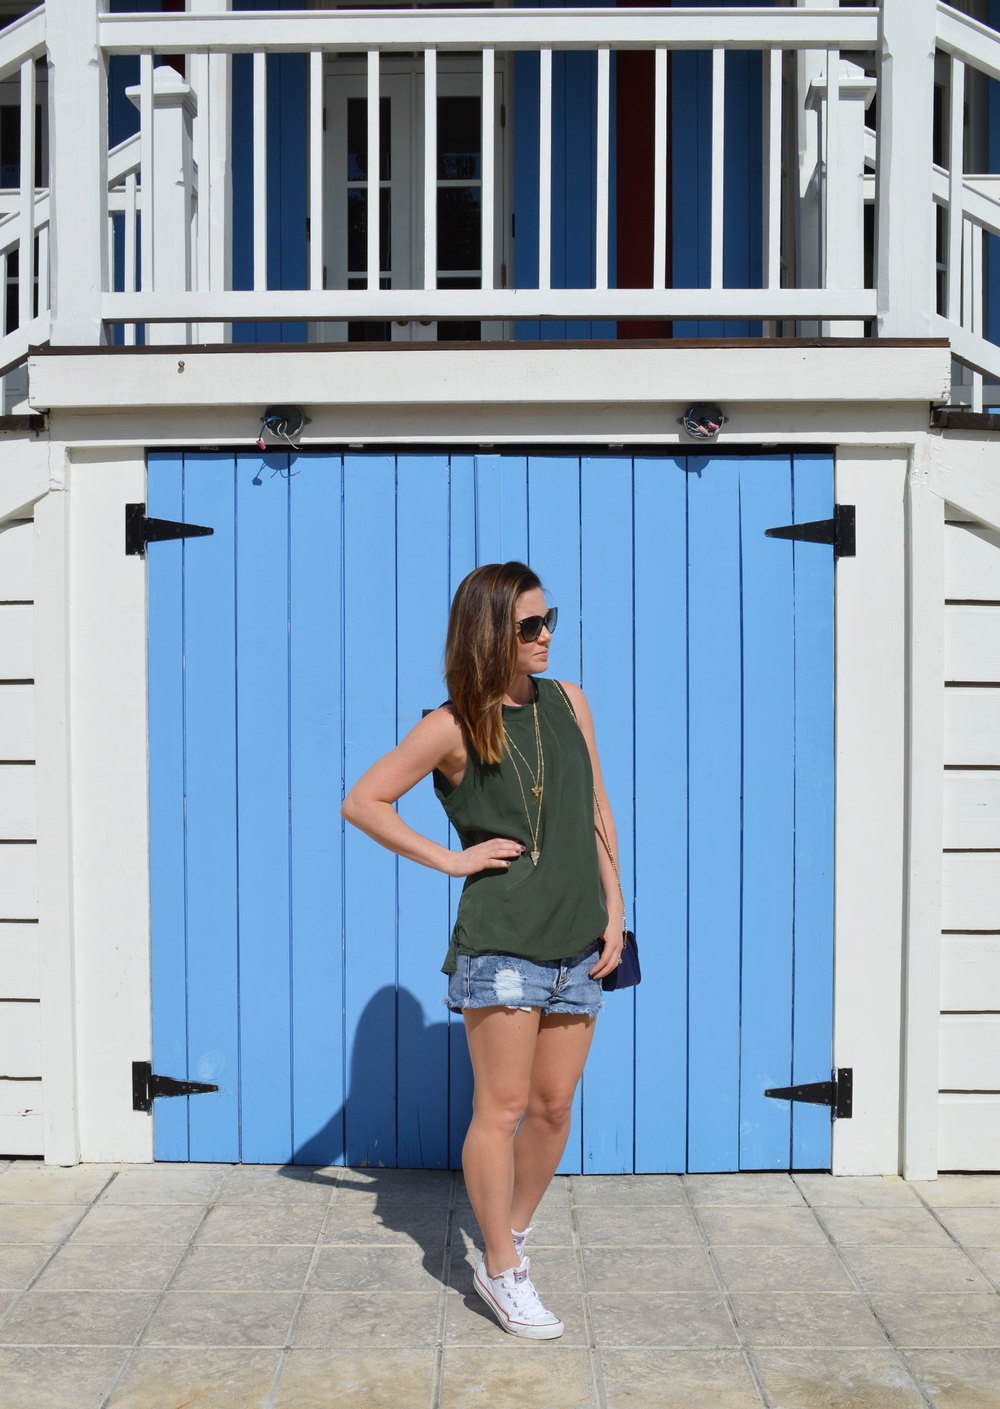 Piperlime-tank-style-blogger-nassau-bahamas-day-date-wiw-ootd-converse-perfect-tank-button-back-furla-mini-crossbody-baublebar-shark-tooth-lifestyle.jpeg